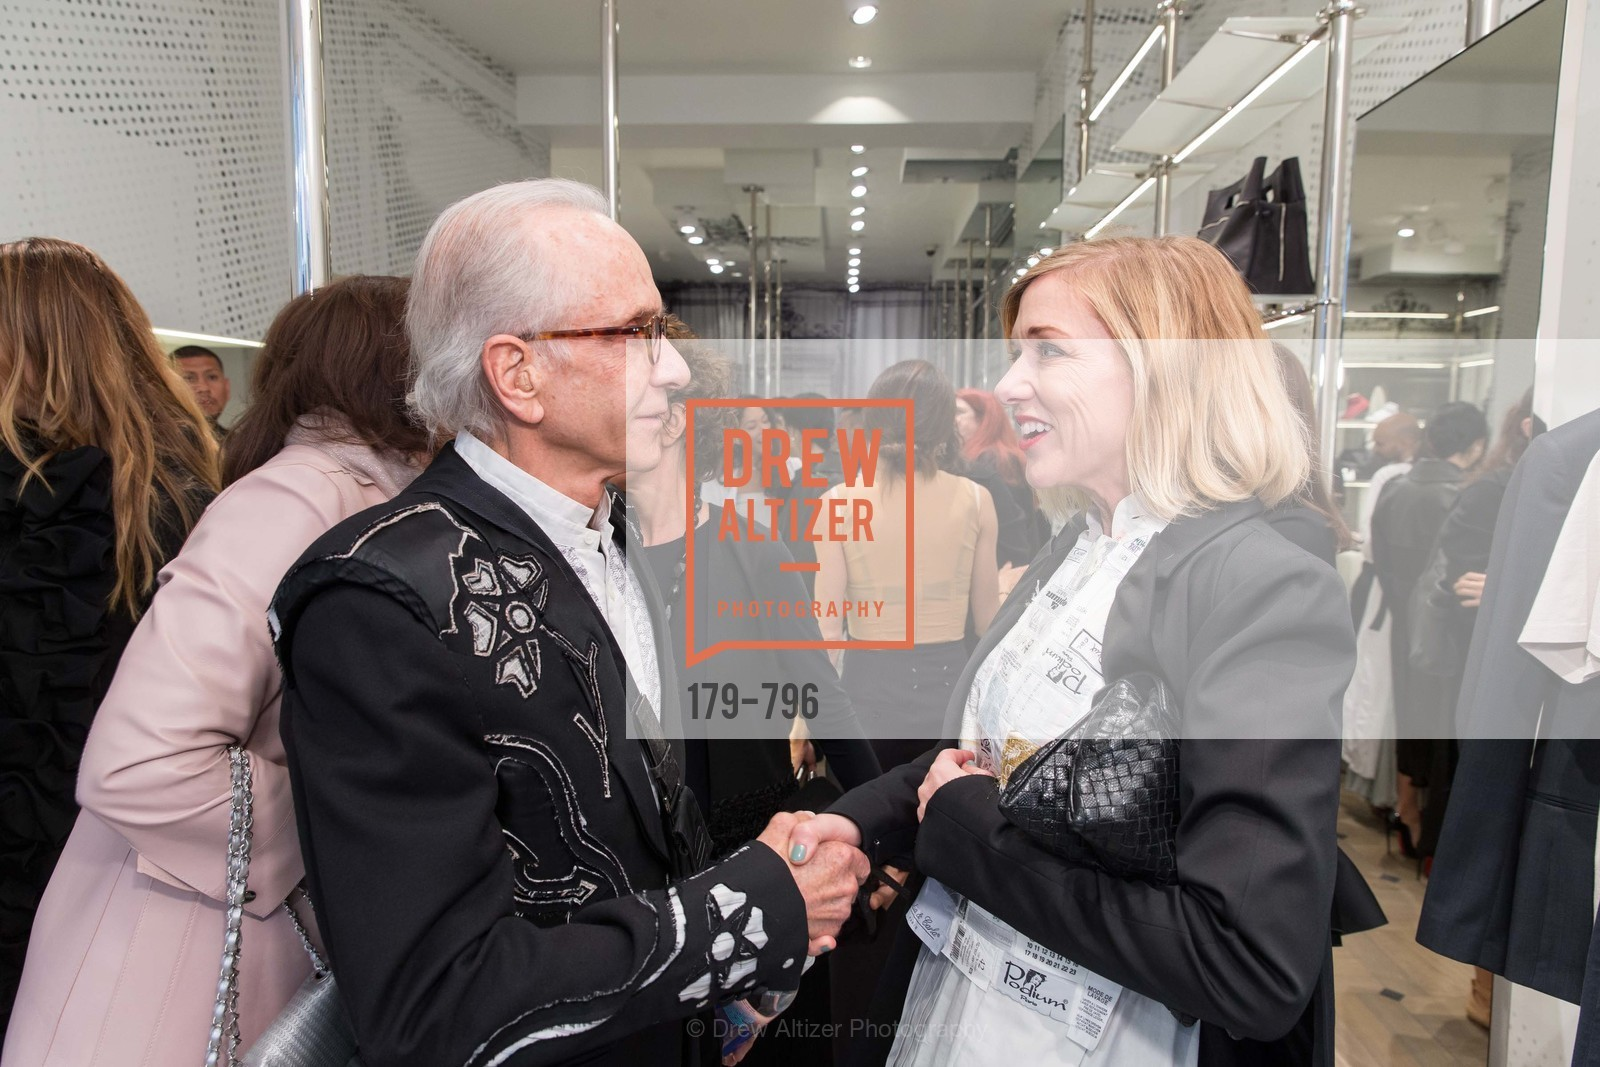 Norman Stone, Lara Deam, MAISON MARGIELA San Francisco Boutique Grand Opening Event, US, April 24th, 2015,Drew Altizer, Drew Altizer Photography, full-service agency, private events, San Francisco photographer, photographer california